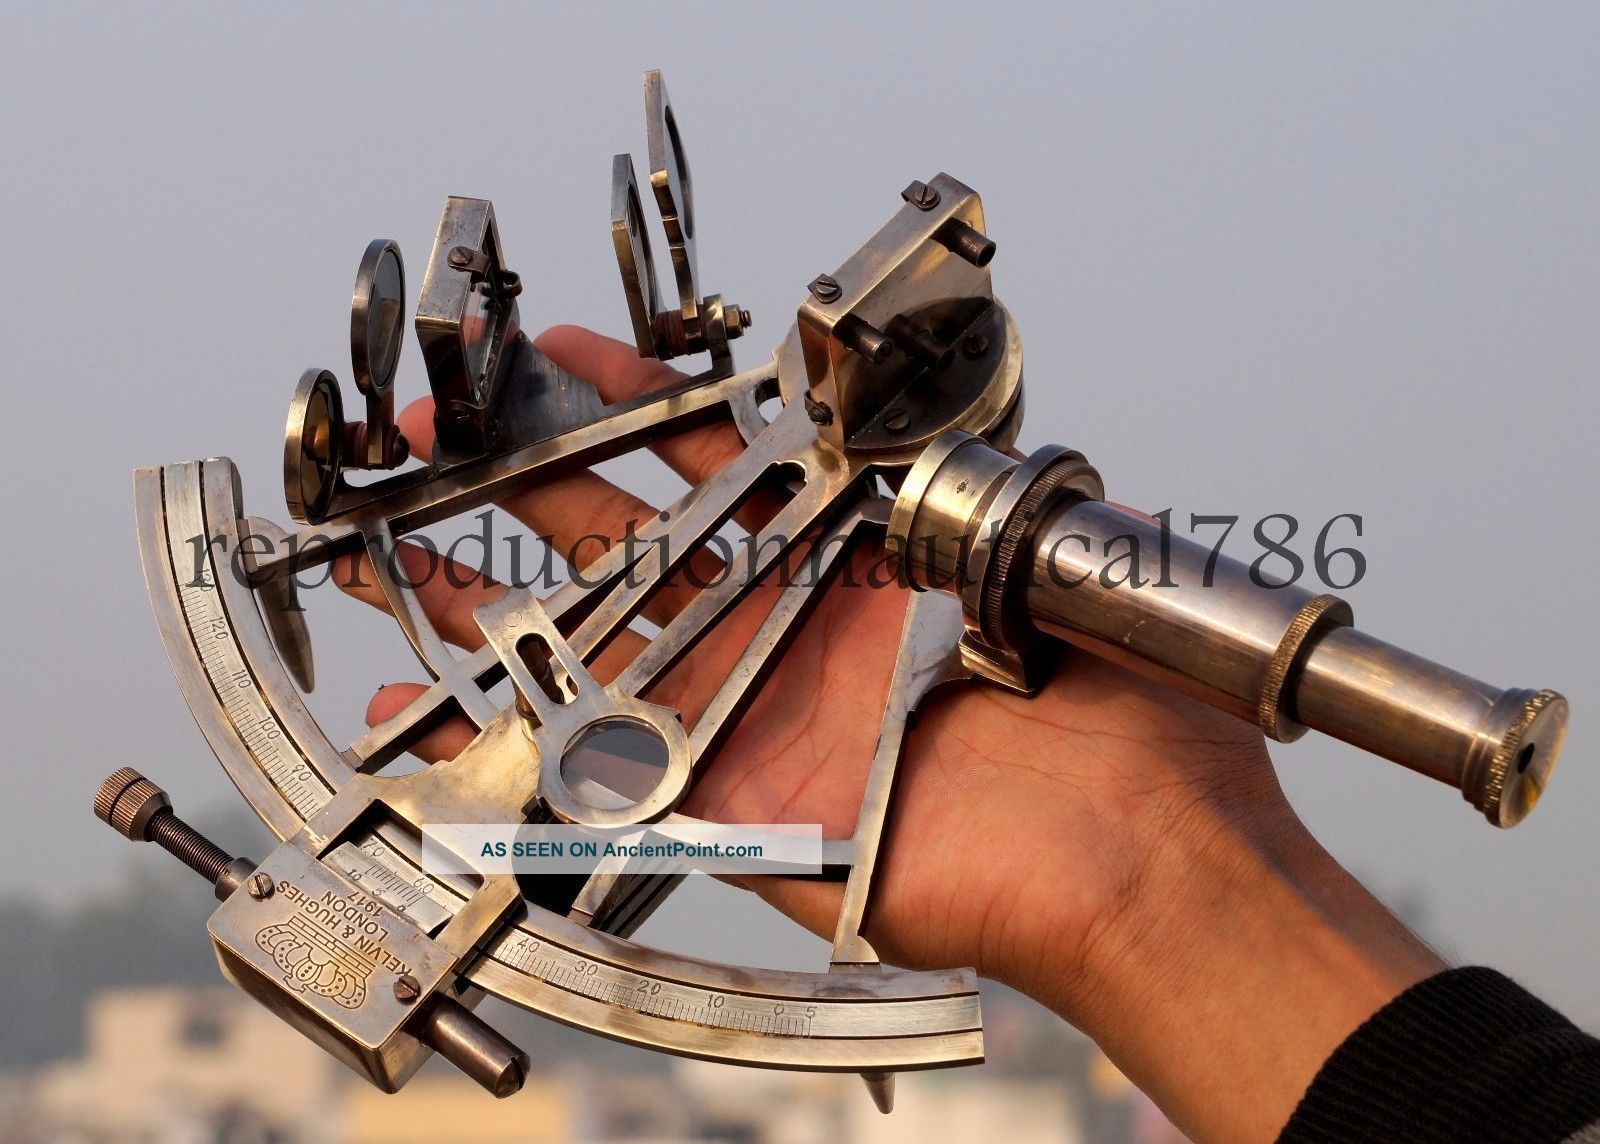 Nautical Brass Antique Sextant Maritime Collectible Marine Ship Instrument Gift Sextants photo